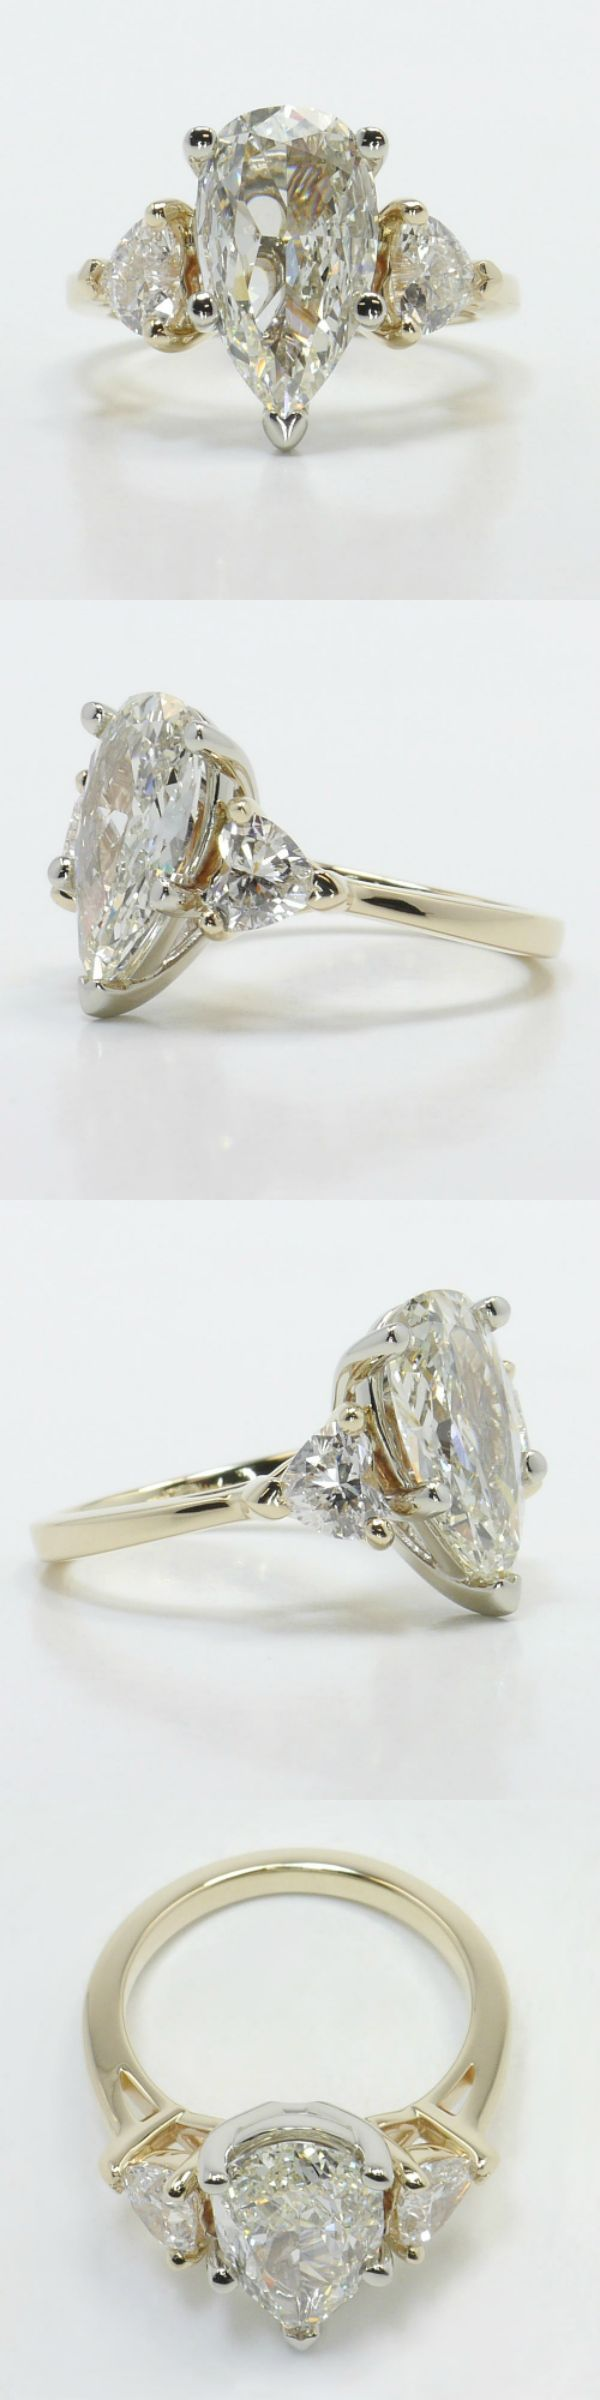 One Pear and Two Hearts Diamond Engagement Ring!